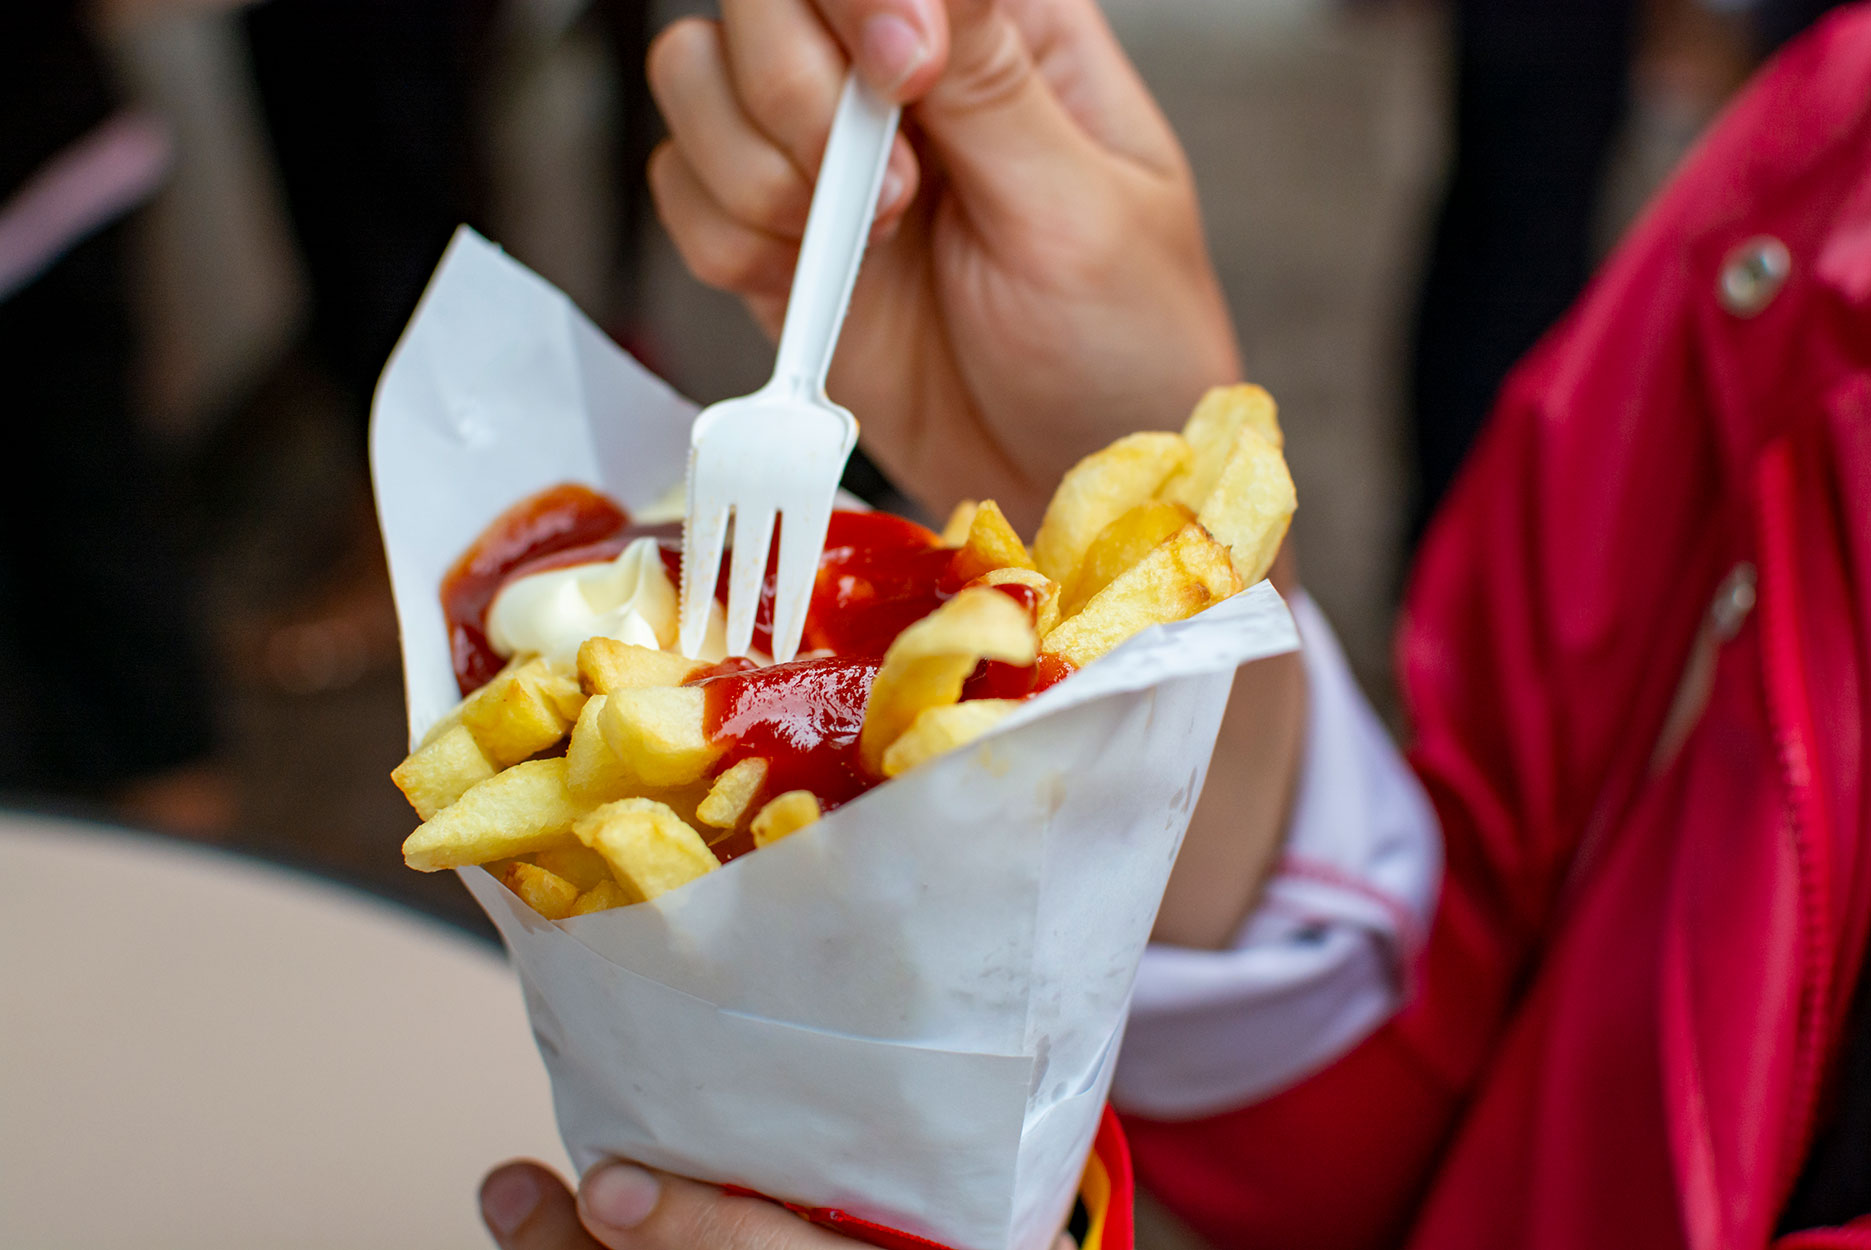 Eating of Belgian fried potatos chips with ketchup and mayonnaise, street fast food